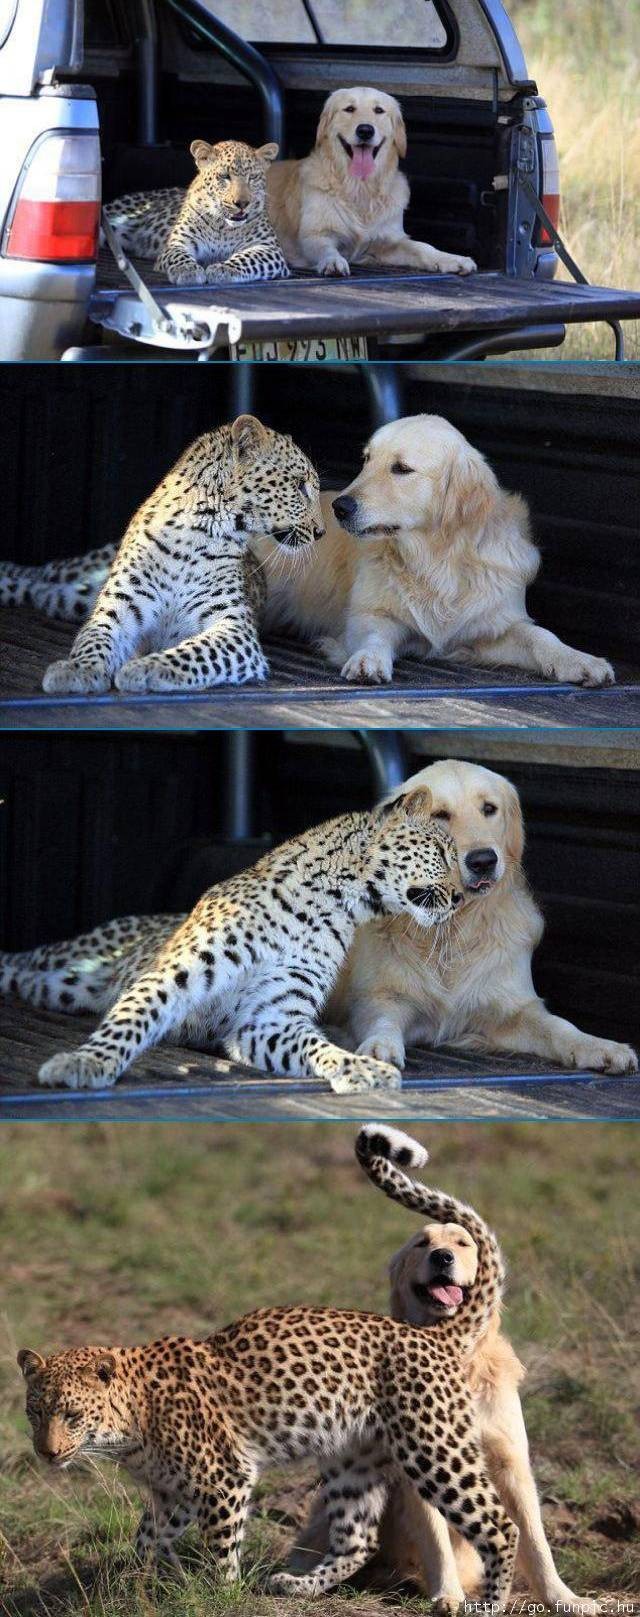 cheetah-labrador-friendship